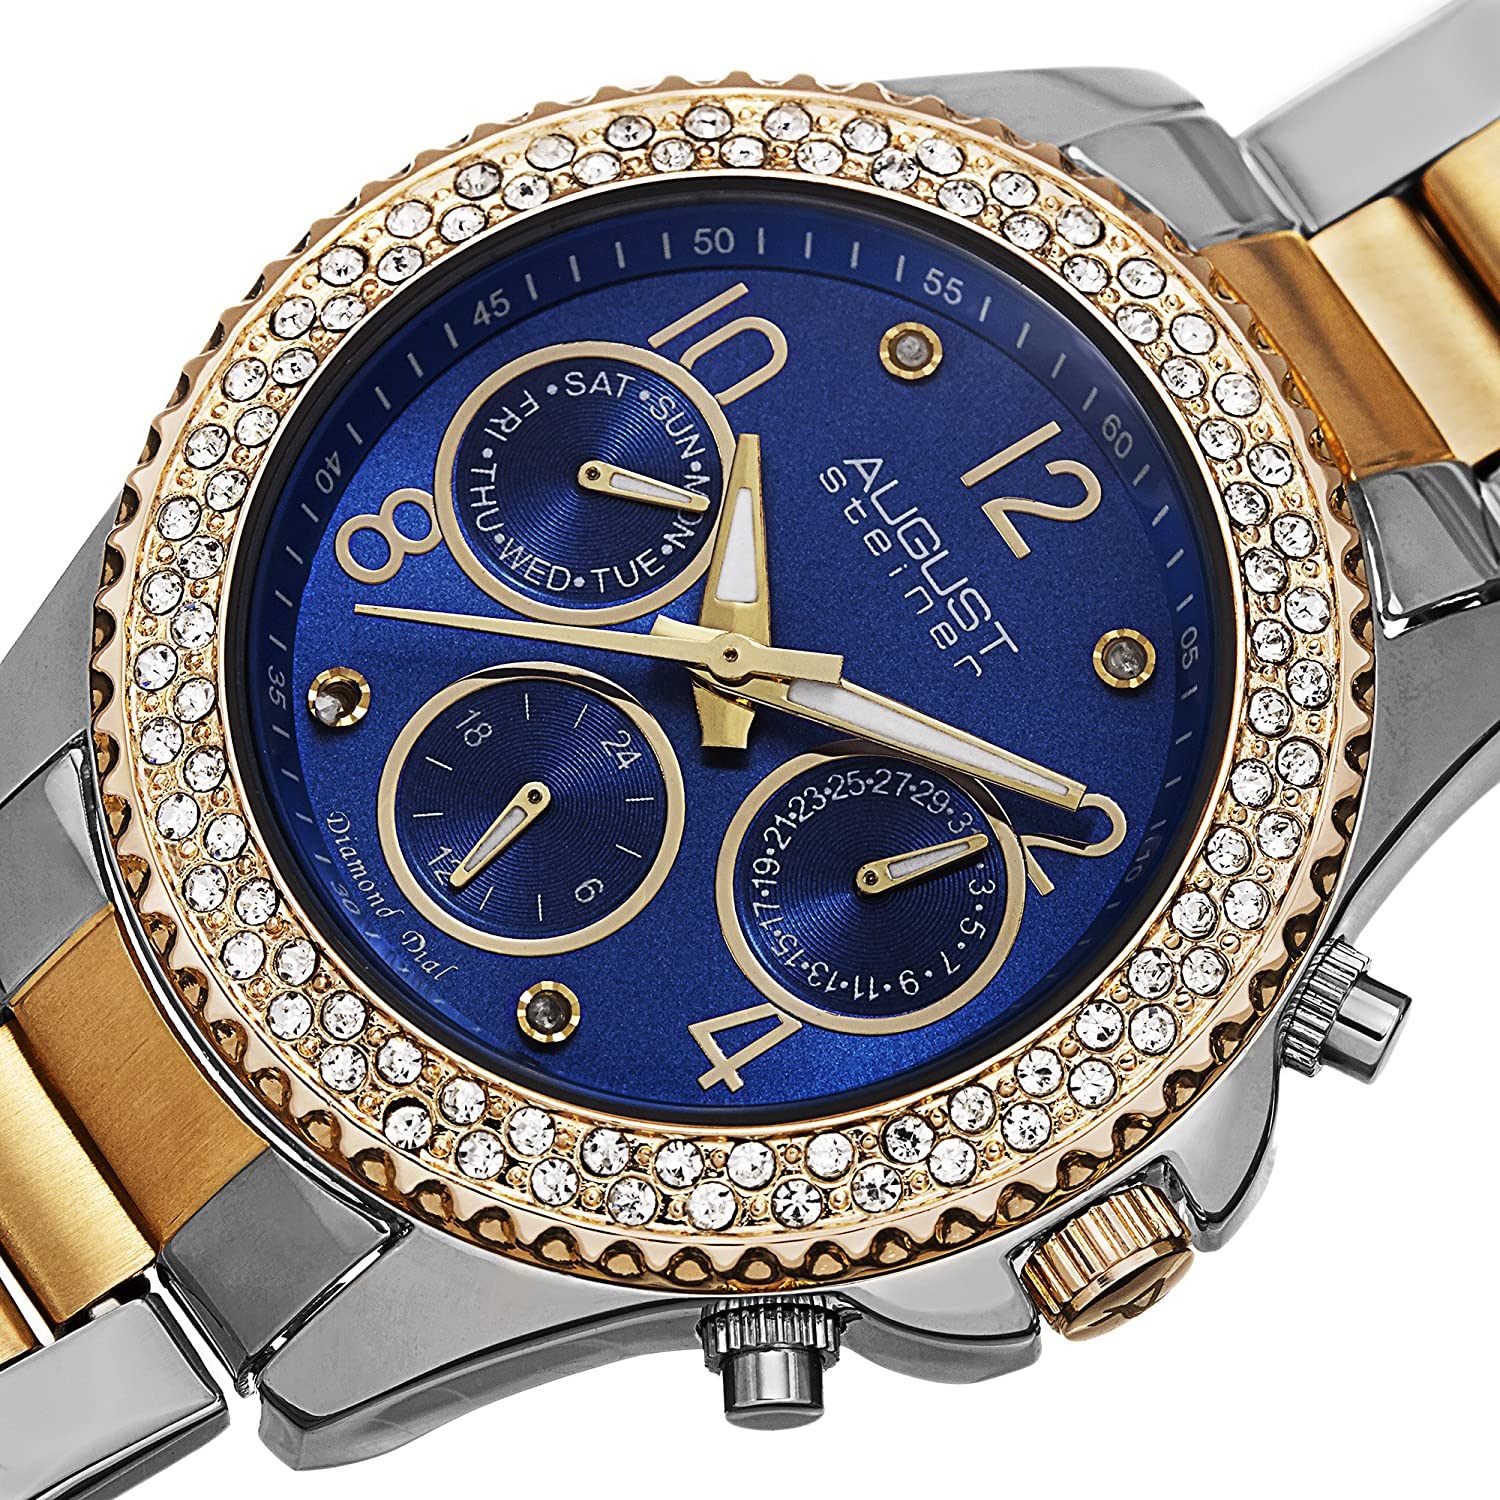 August Steiner Women's Multifunction Watch - 3 Subdials Day, Date and GMT On Colored Dial Crystal Filled Bezel on Stainless Steel Bracelet - AS8136 Deep Blue